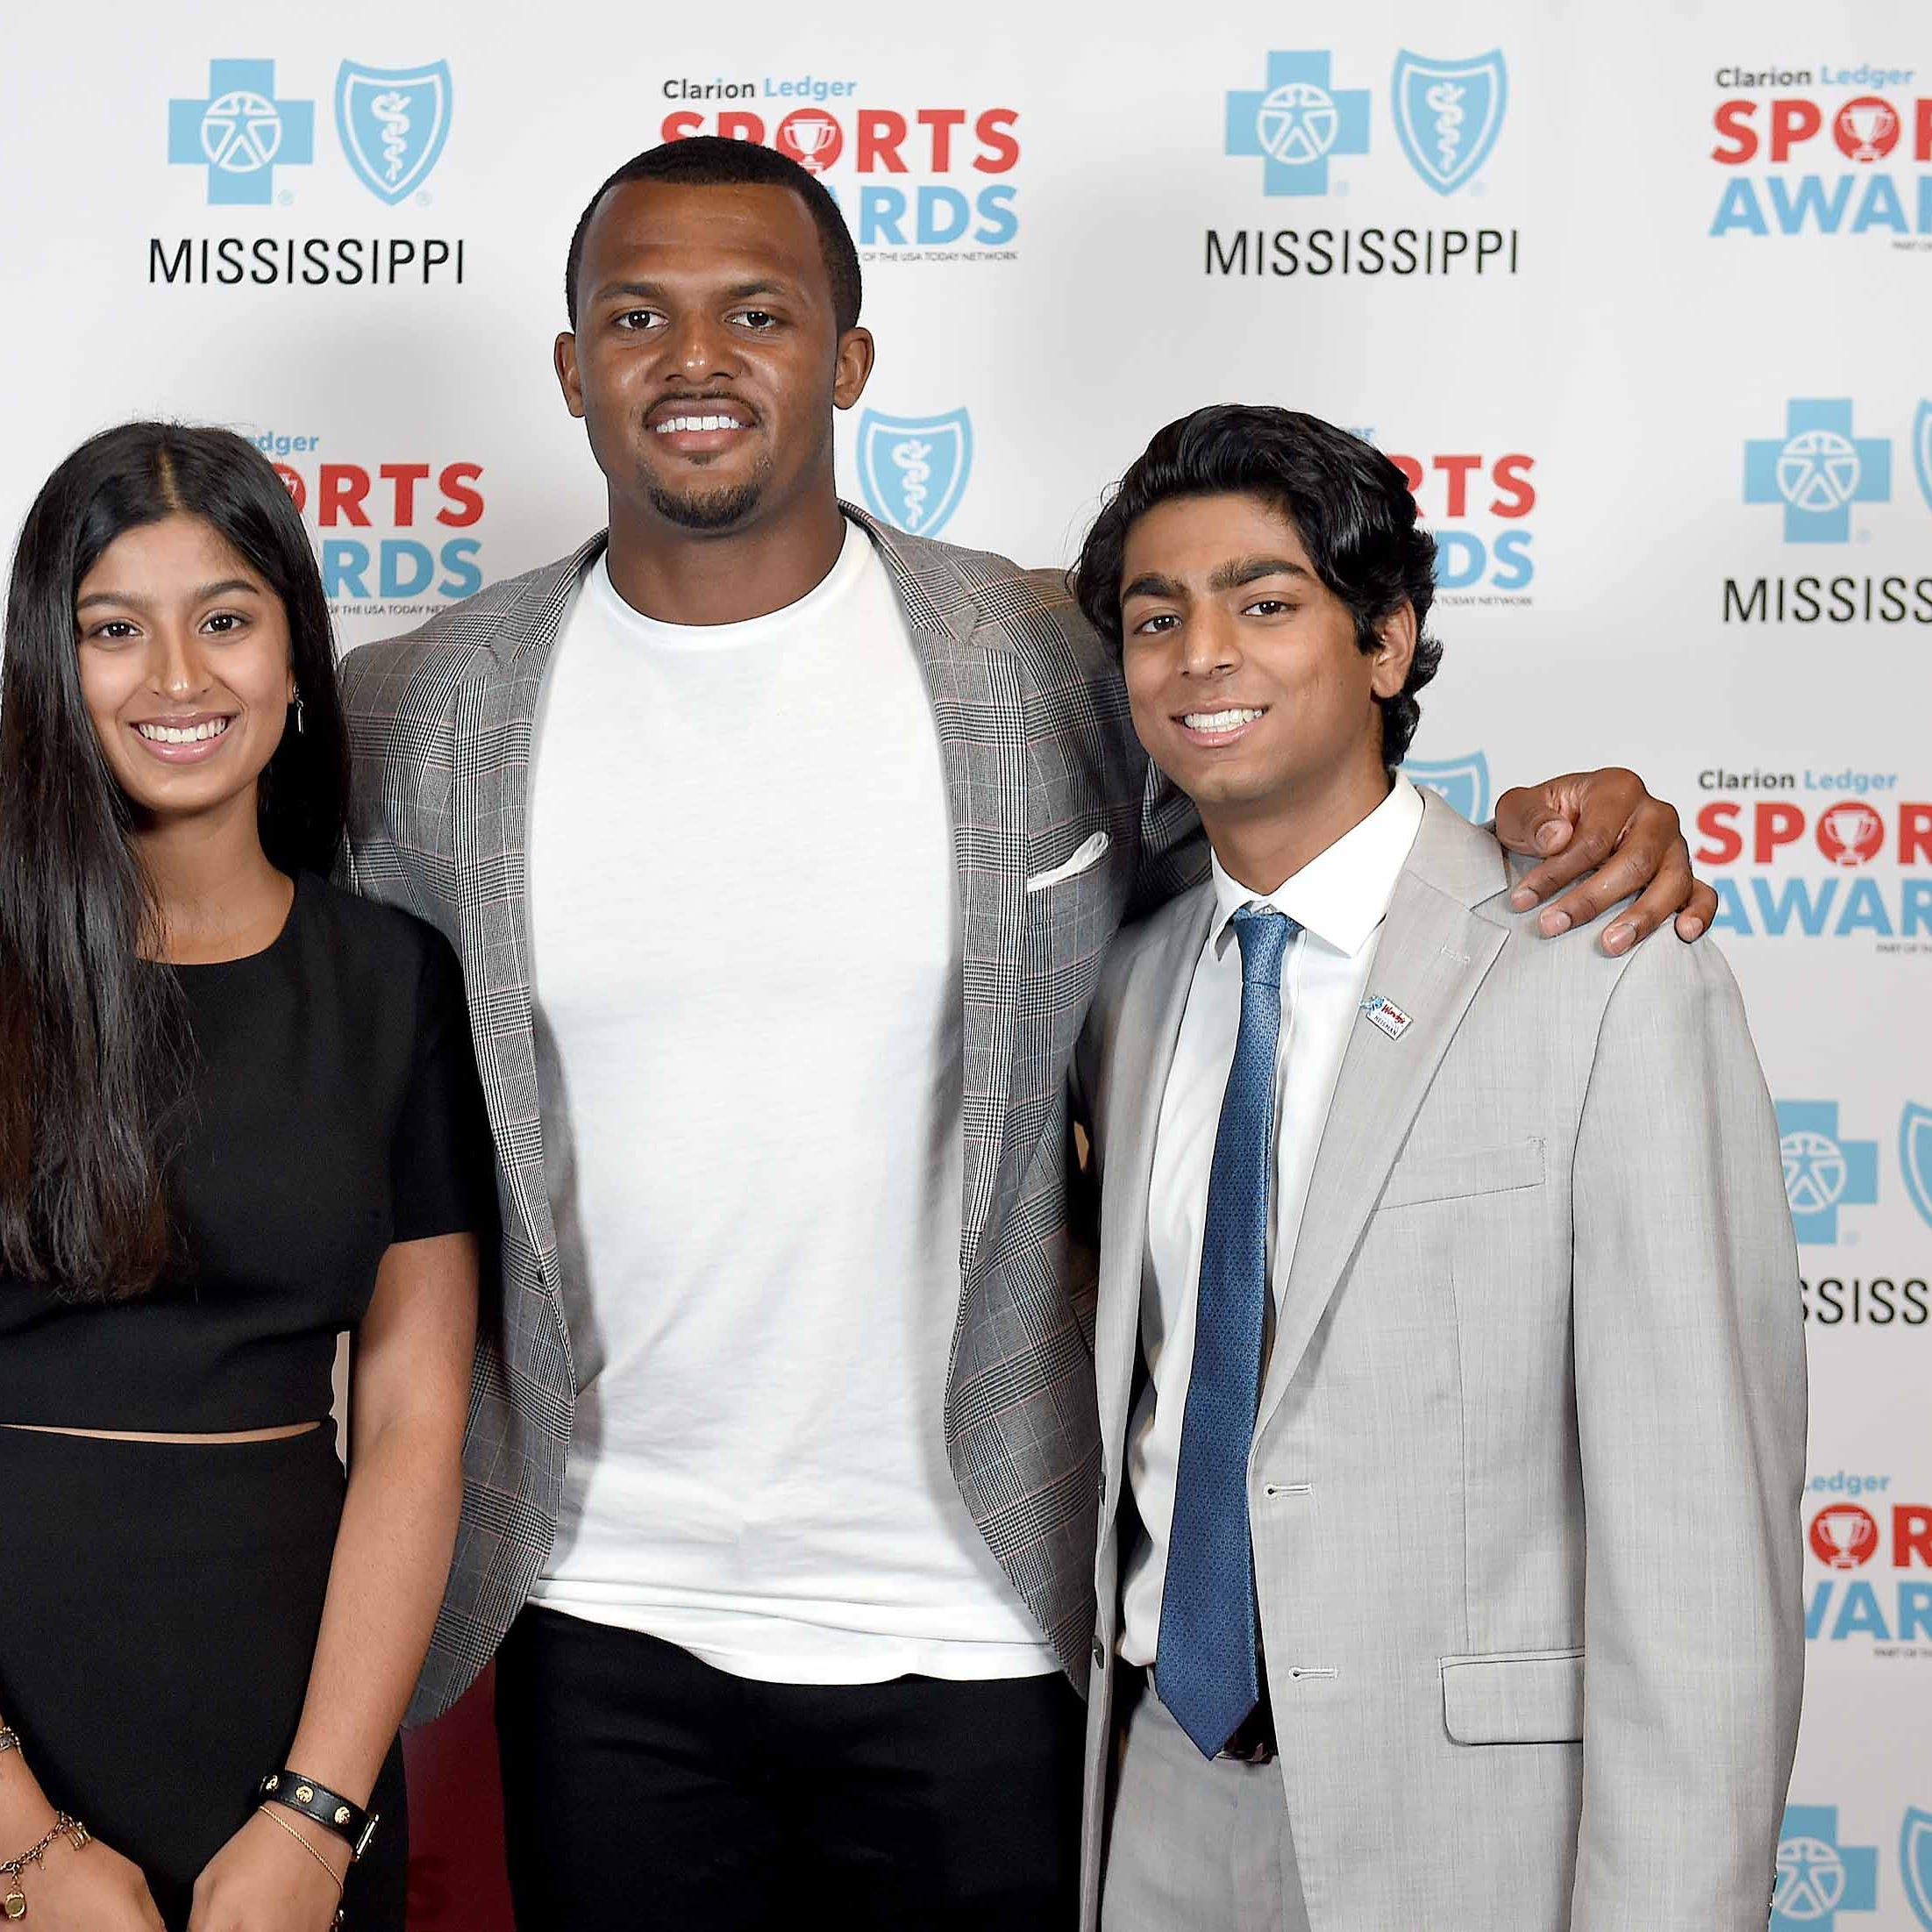 Mississippi Sports Awards honors 36 athletes as Deshaun Watson encourages attendees